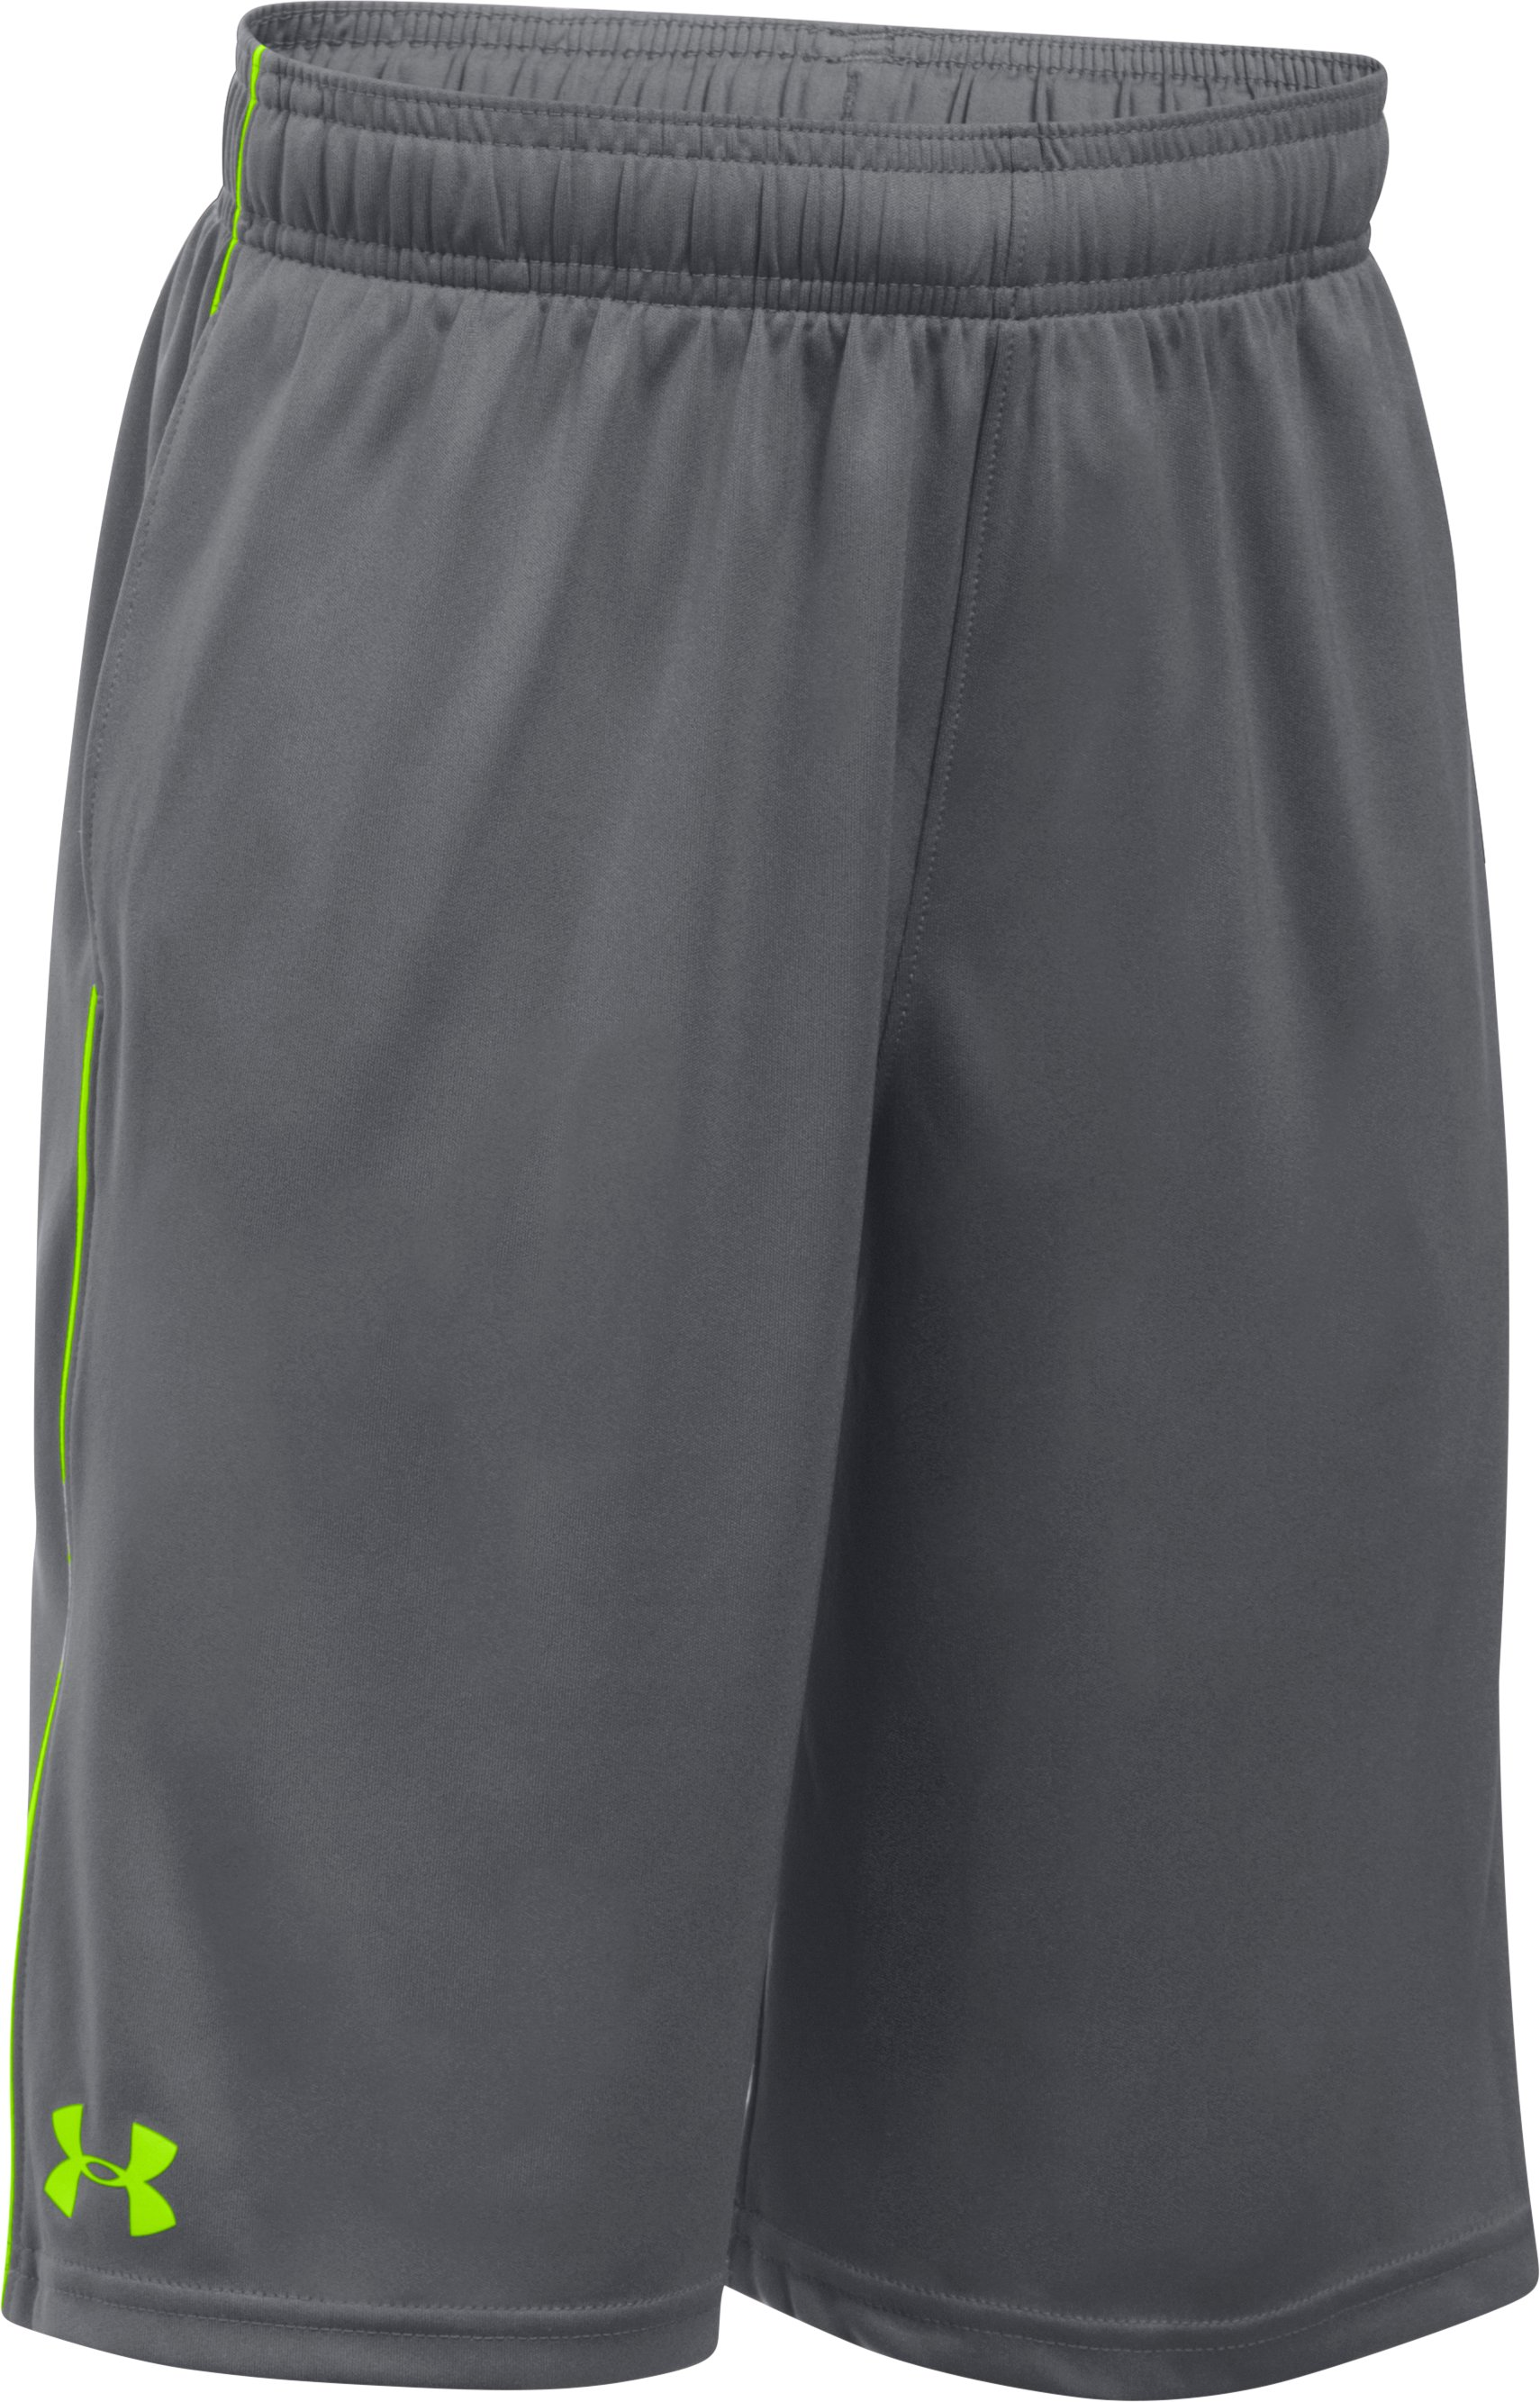 Boys' UA Tech™ Blocked Shorts, Graphite